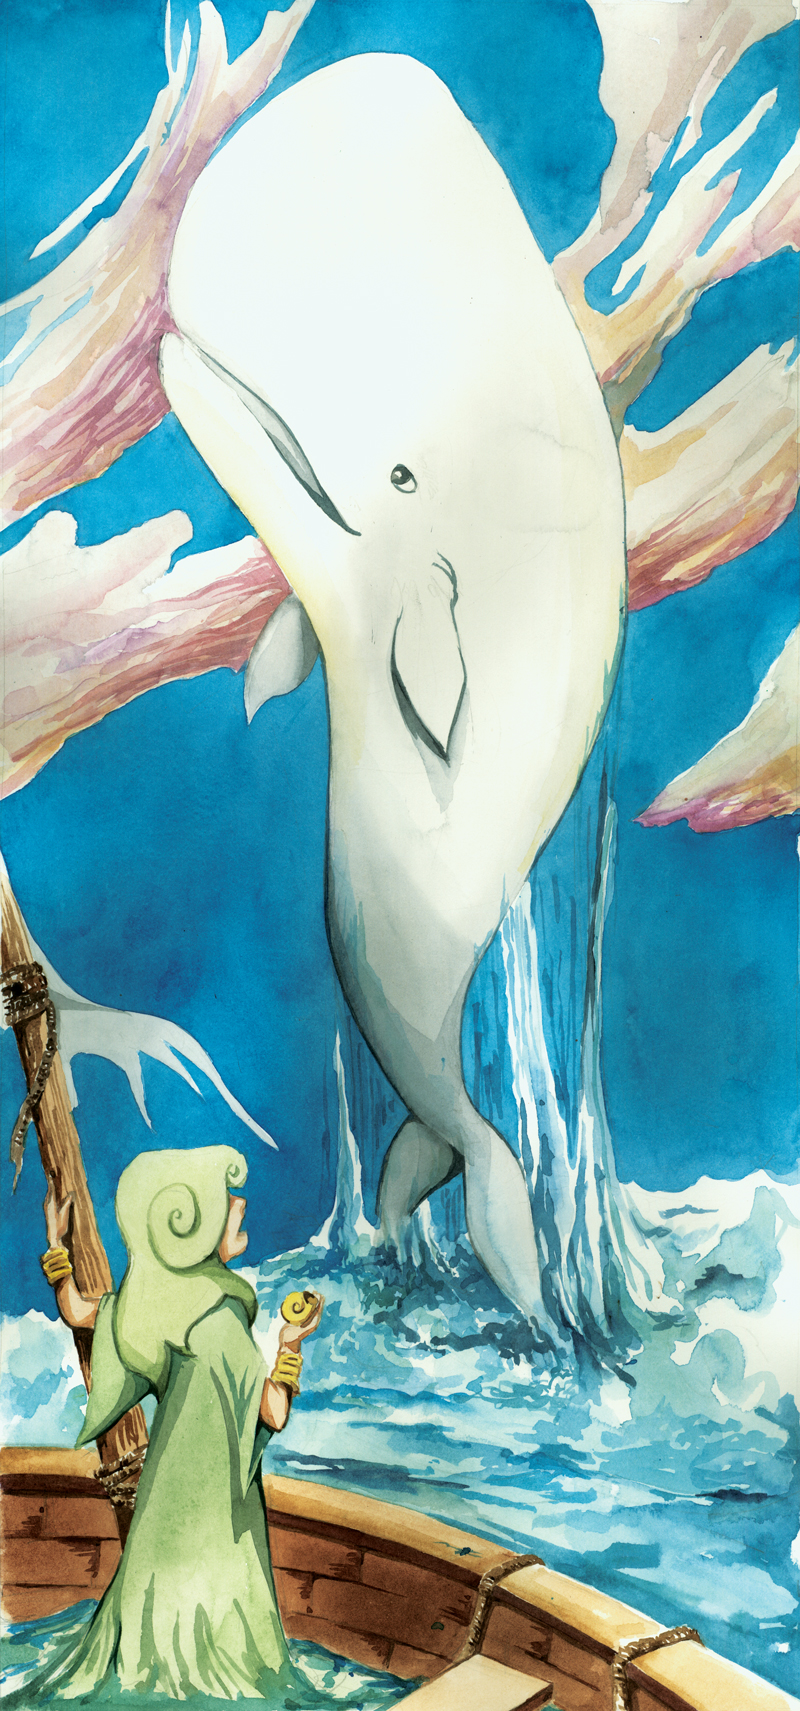 Whale-and-the-witch-flight